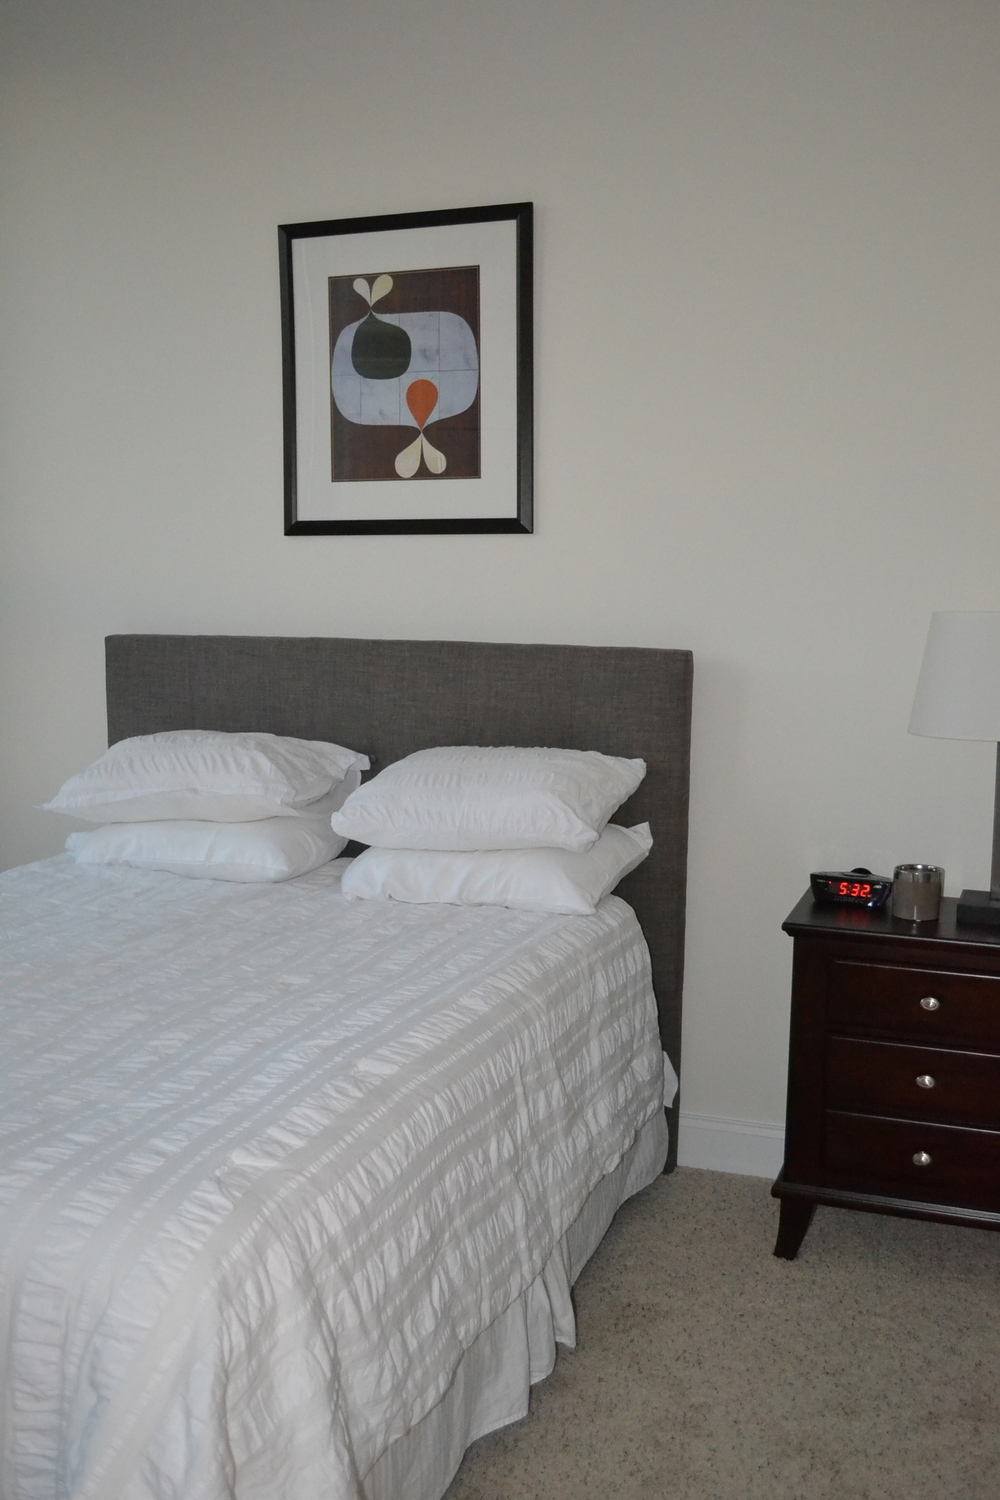 Simple and cozy bedroom makes for a good night sleep in Atlantic Station High-rise condo.